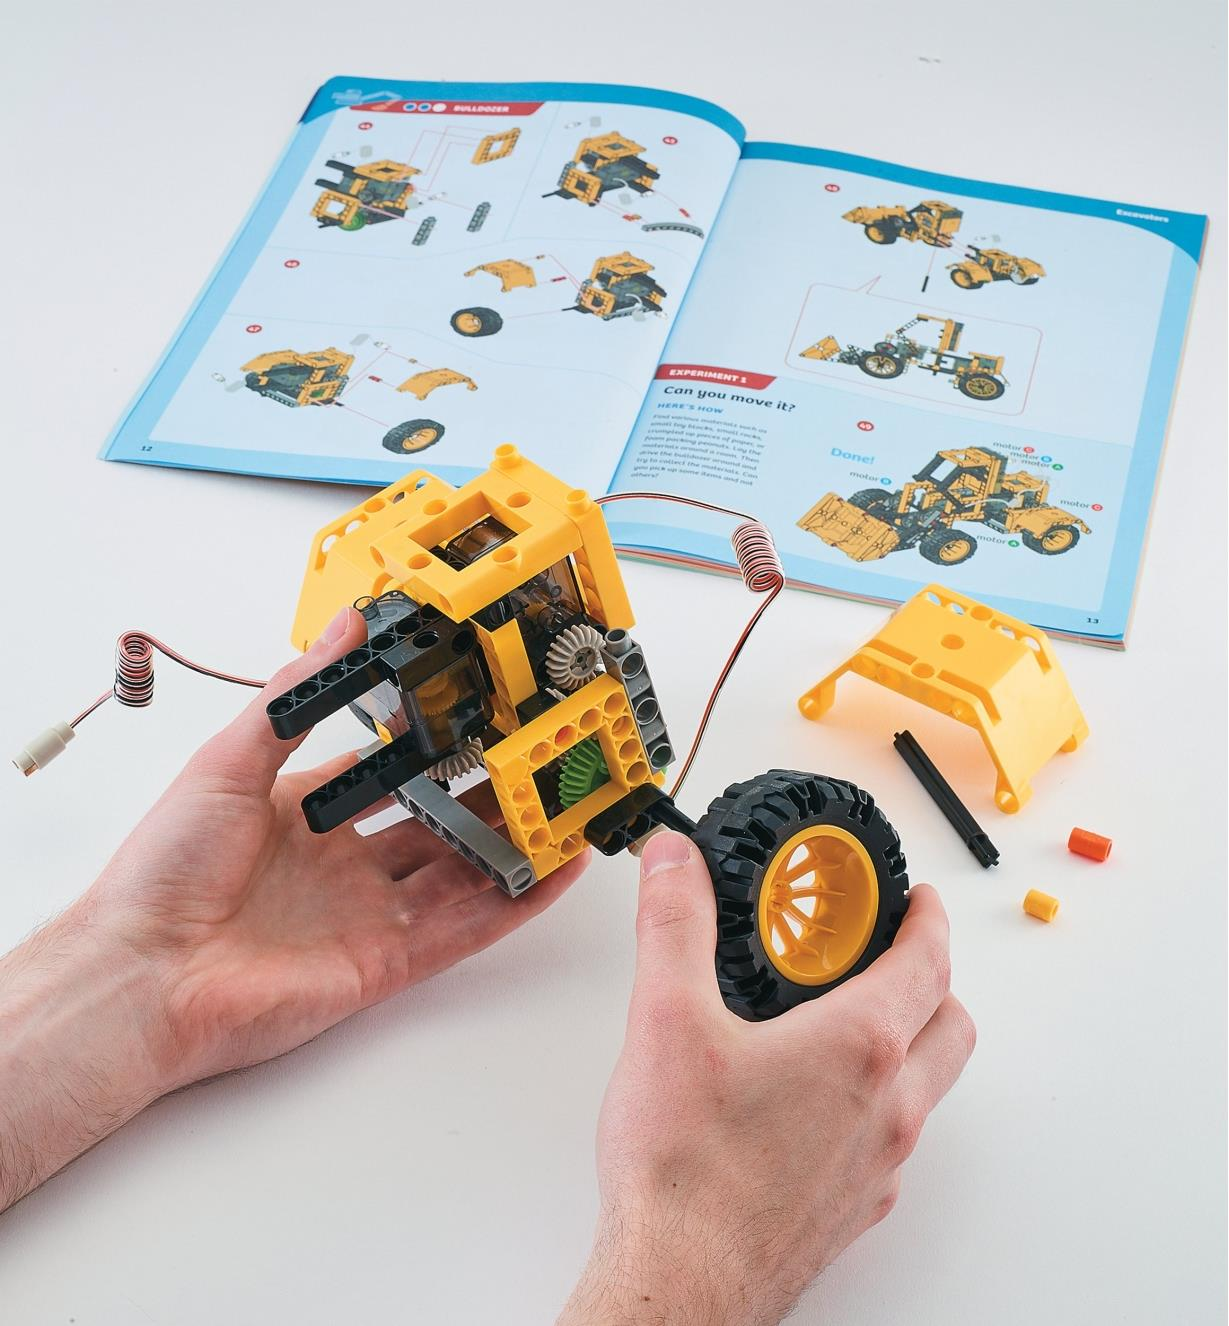 45K4300 - Remote-Controlled Construction Vehicles Kit